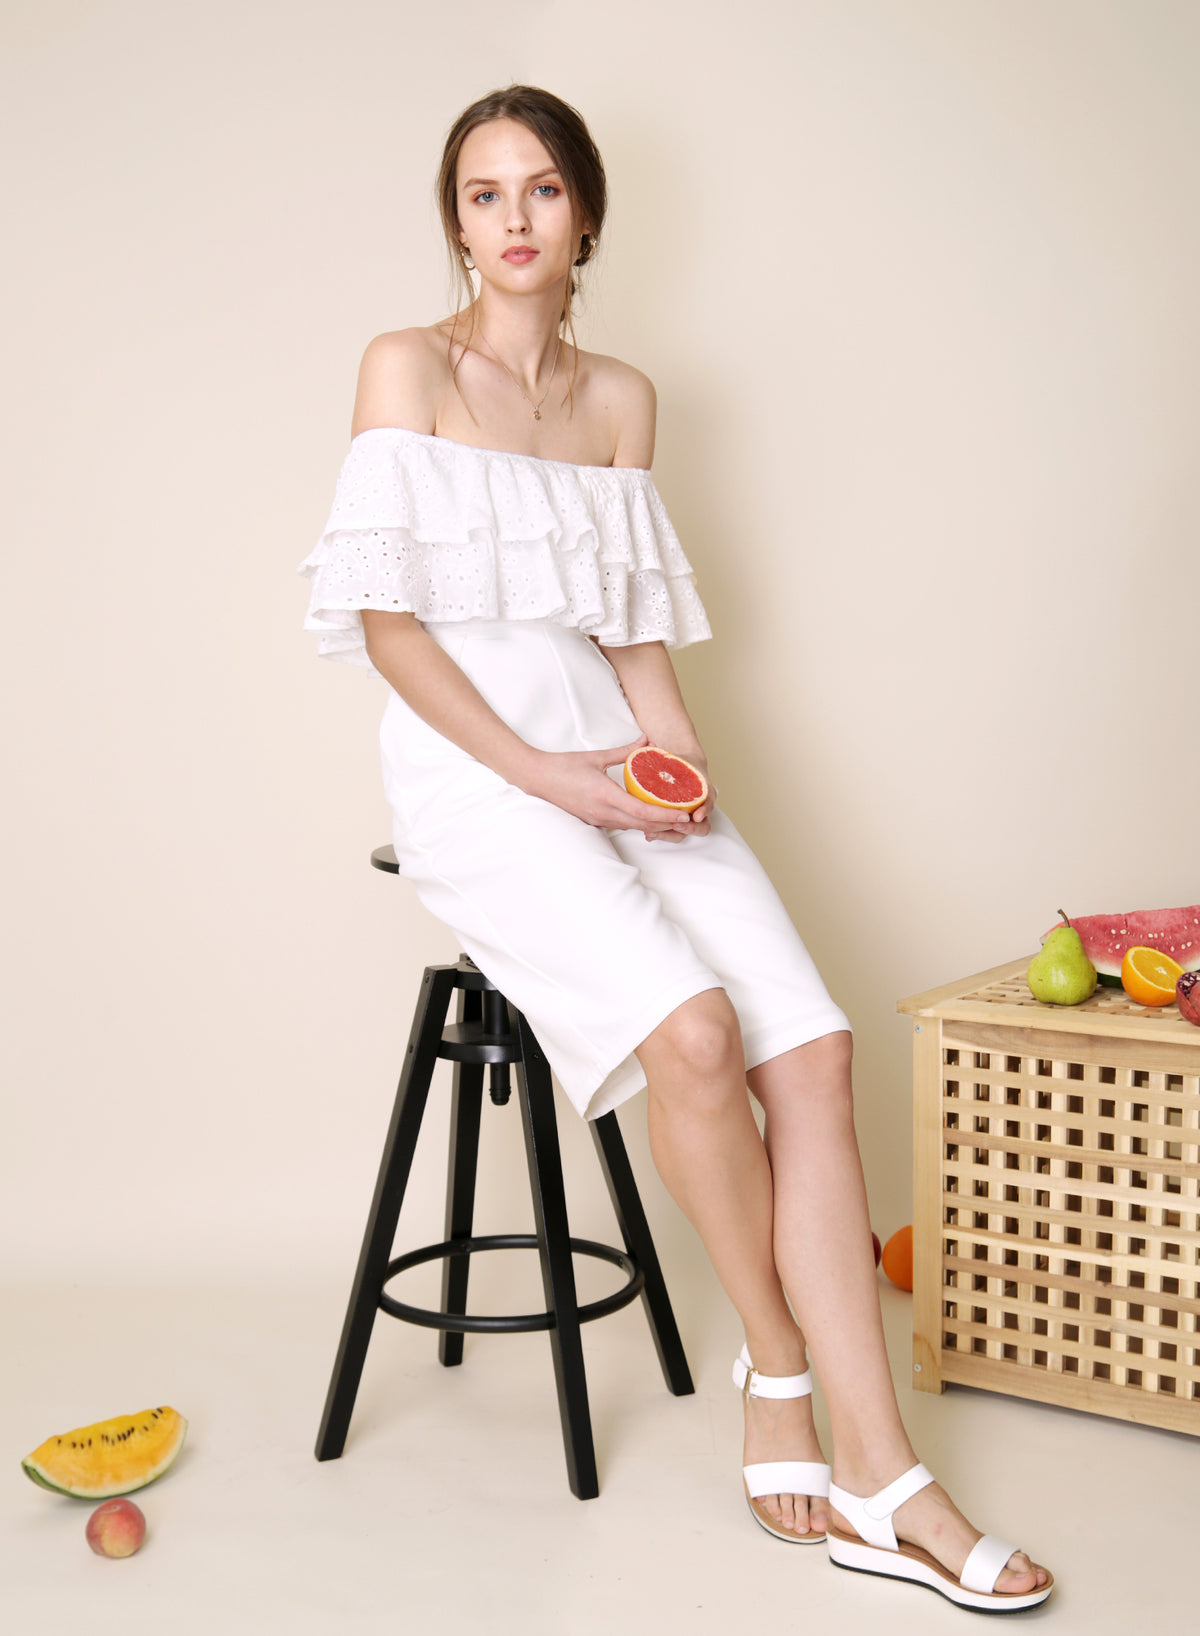 Infatuate Tiered Eyelet Jumpsuit (White) at $ 42.50 only sold at And Well Dressed Online Fashion Store Singapore